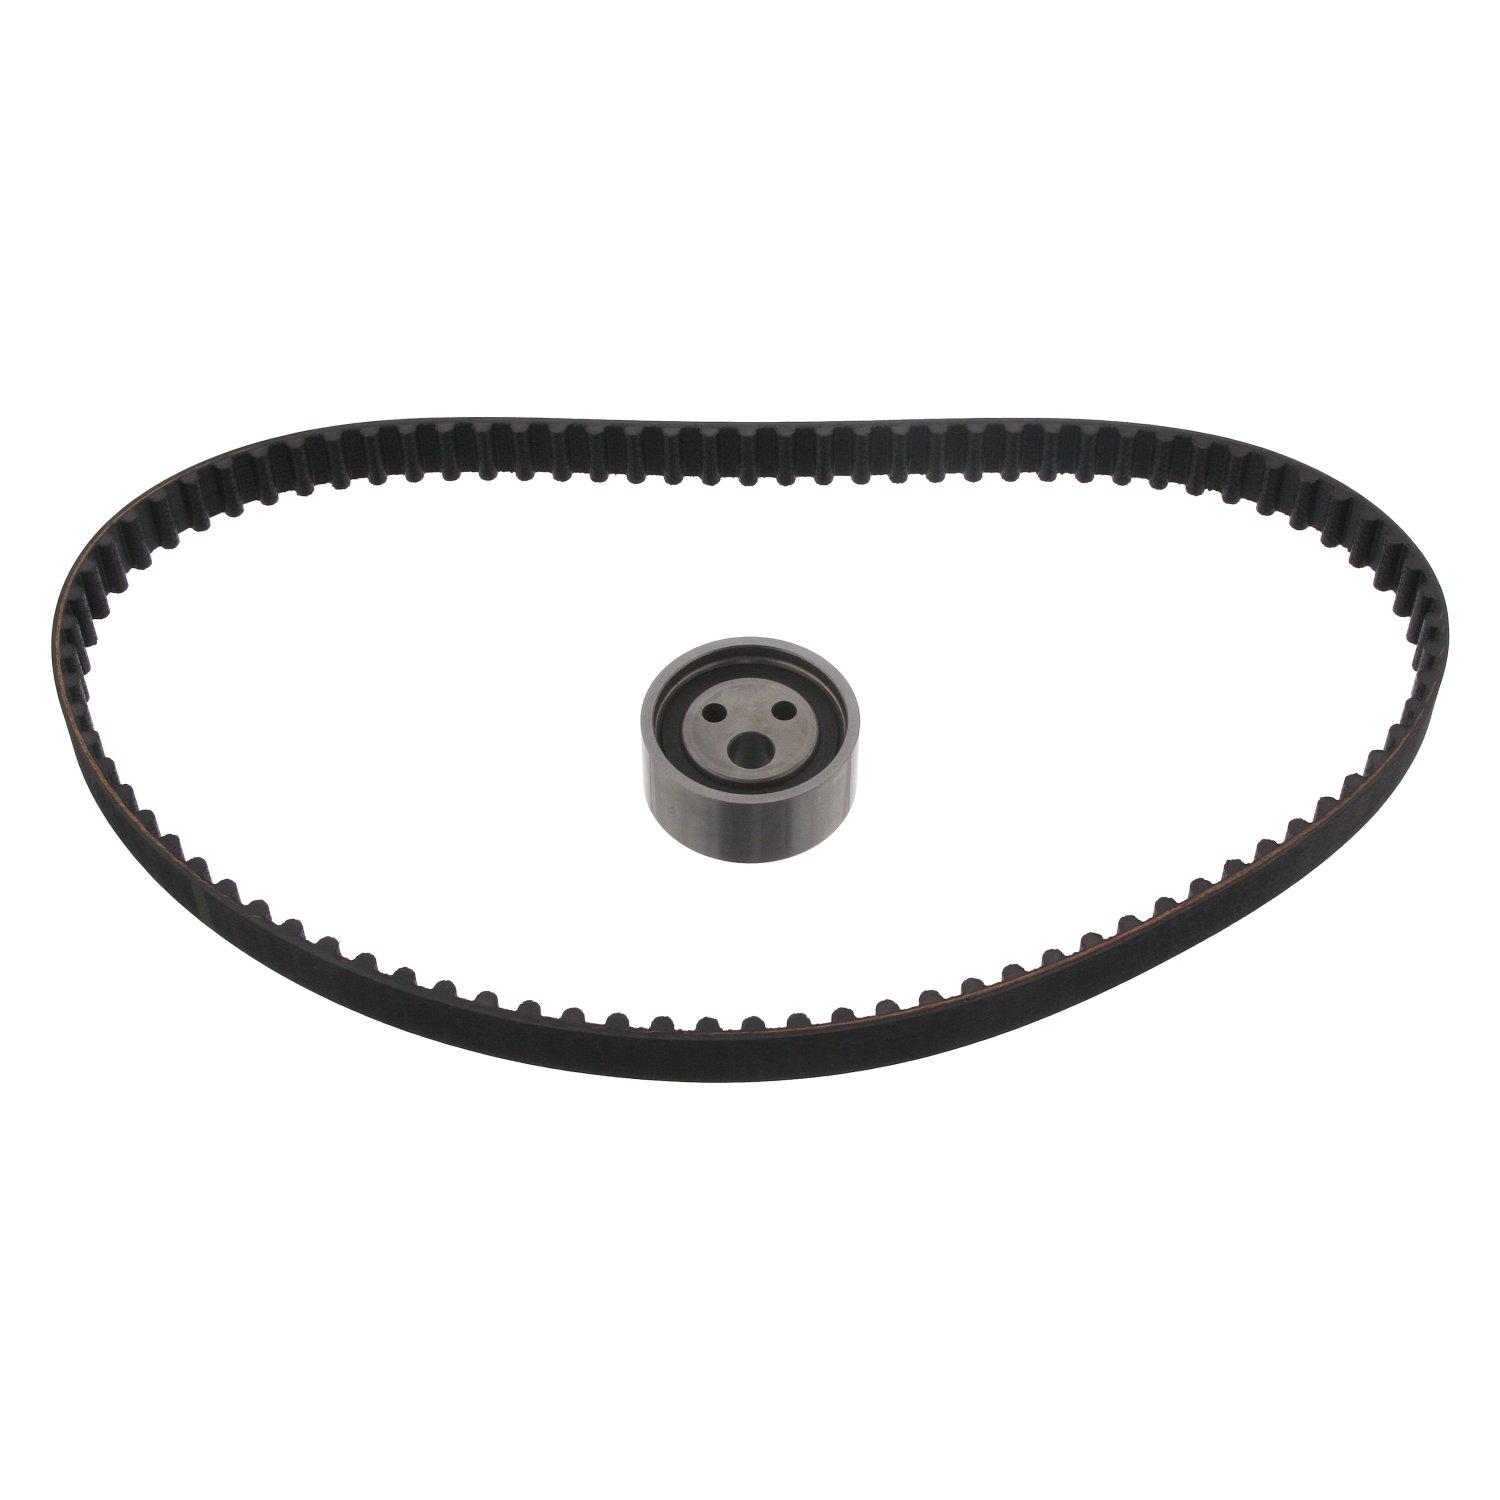 febi bilstein 21249 timing belt kit  - Pack of 1